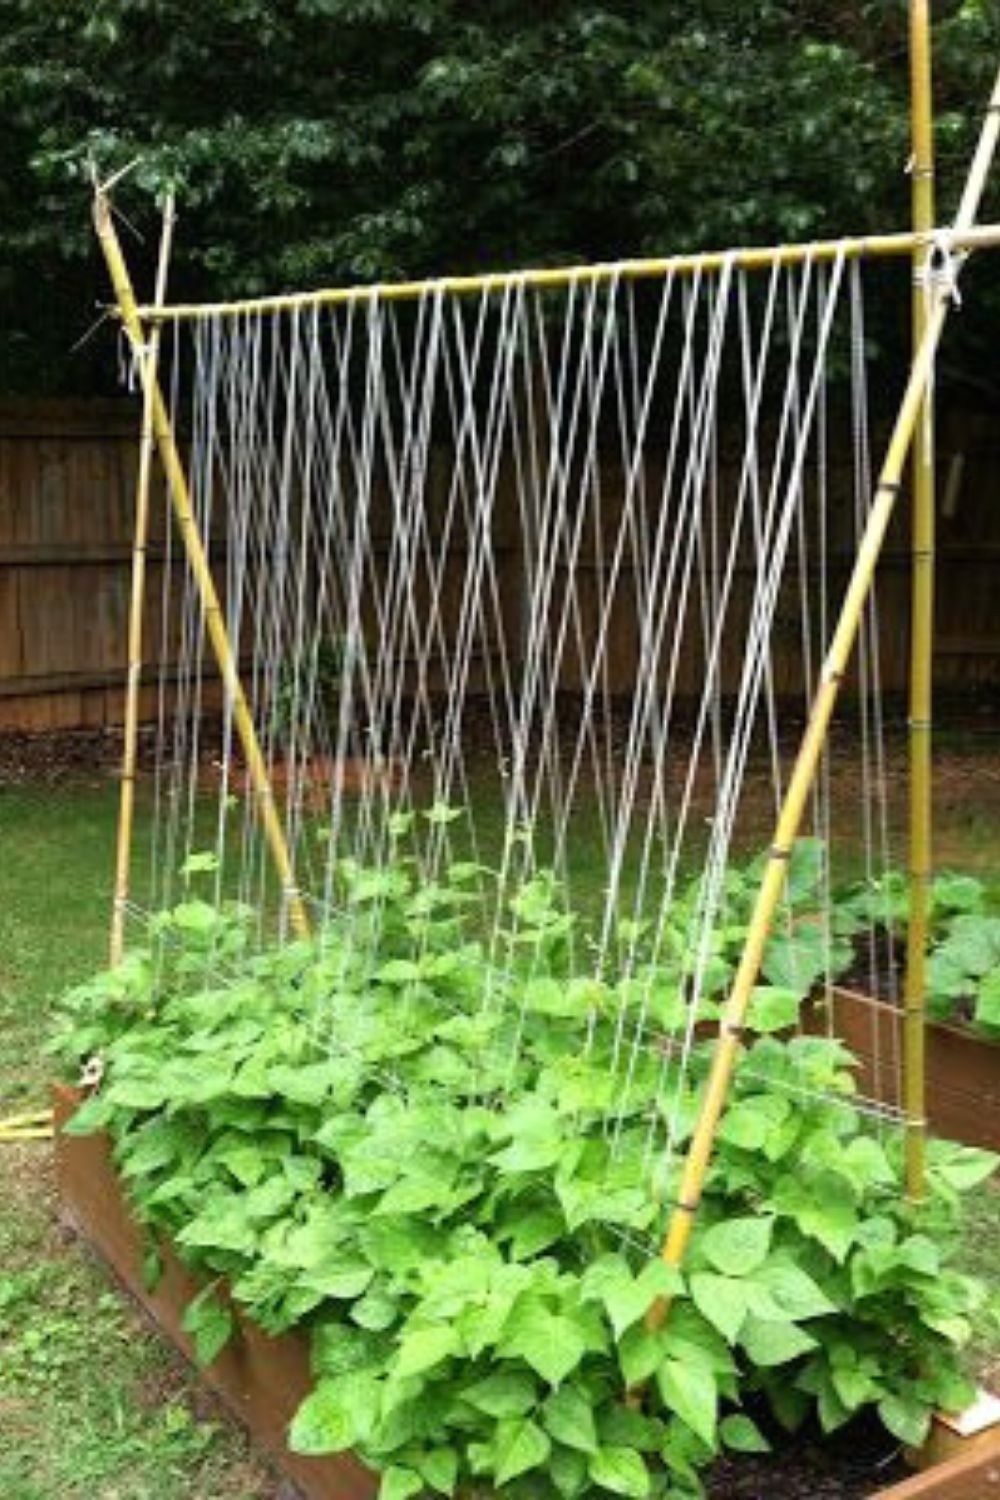 Perfect Trellis Ideas Archway All You Need To Know 773 verticalgardening trellising trellisideas veggiegarden growyourownfood organicfood greenlife freshorganic is part of Vegetable garden -